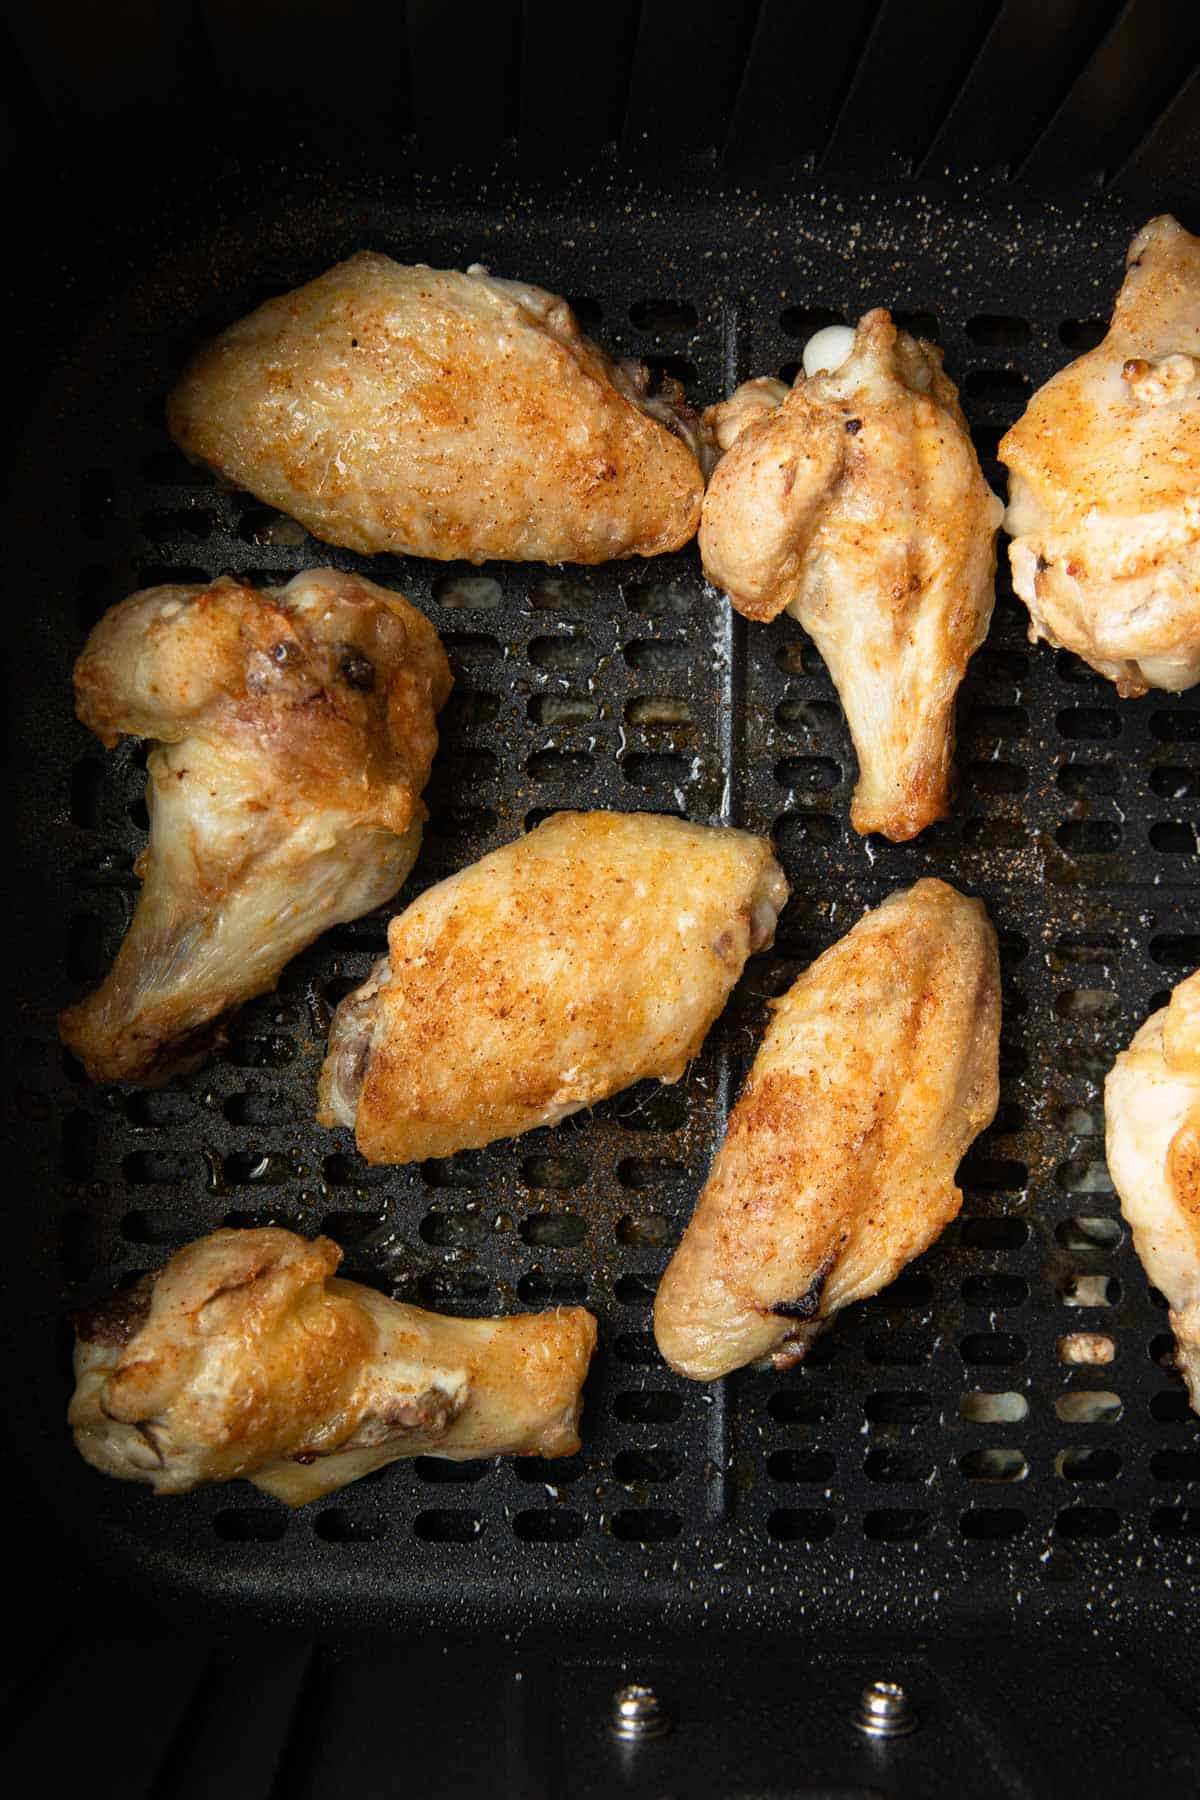 cooked unsauced chicken wings in bakset